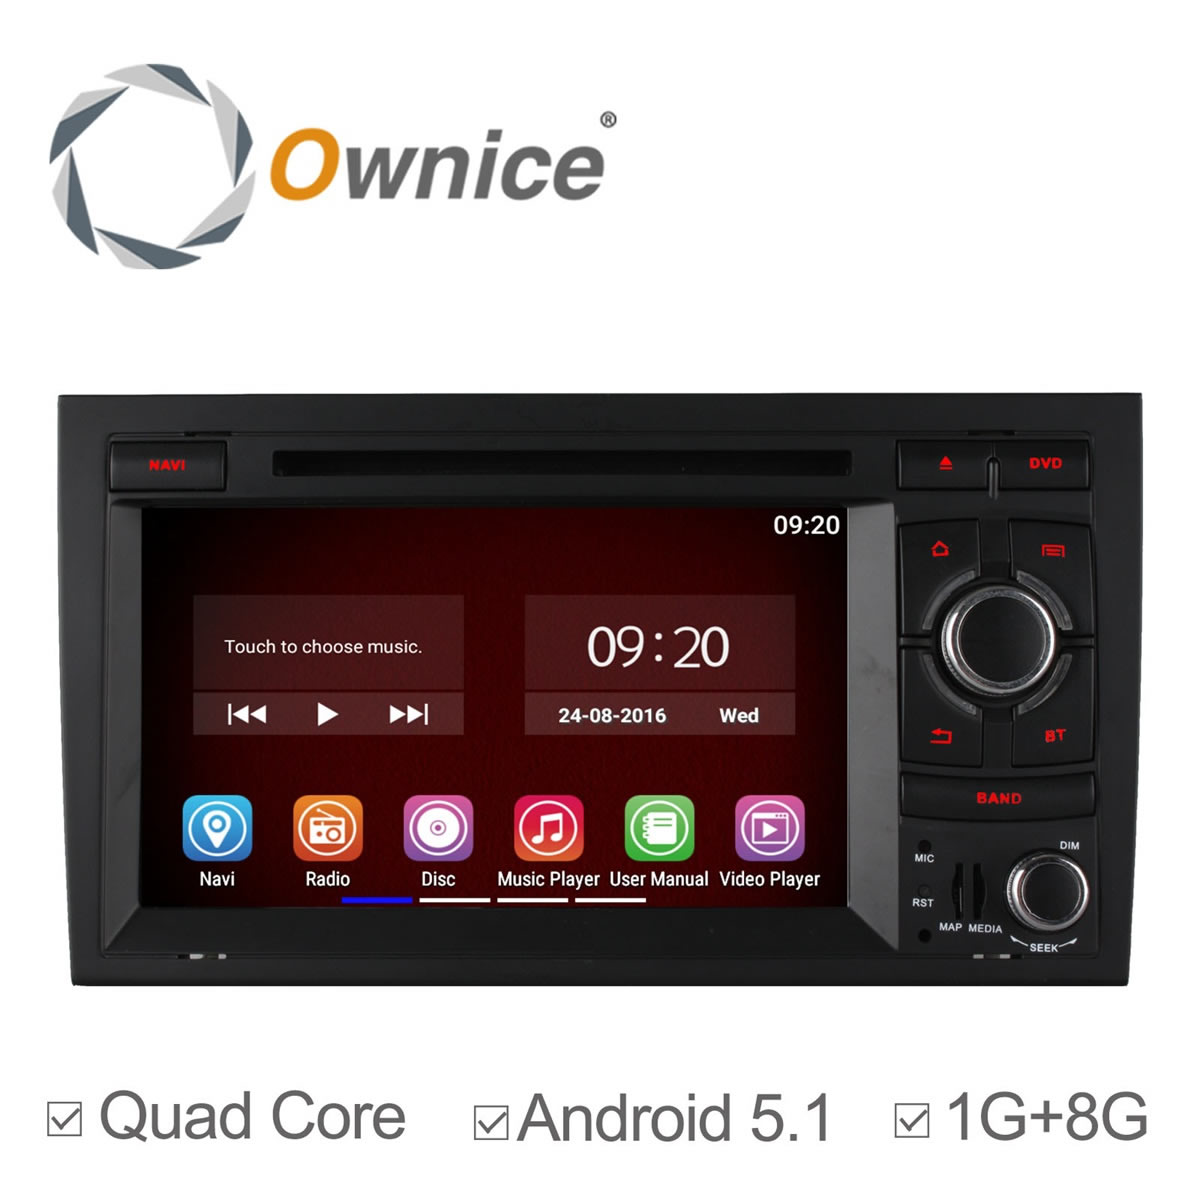 4 Core Android 5.1 Car DVD Player For Audi A4 2002 - 2007 Audi S4 RS4 8E 8F B9 B7 RNS-E with GPS Sat Nav Car Autoradio Bluetooth(China (Mainland))